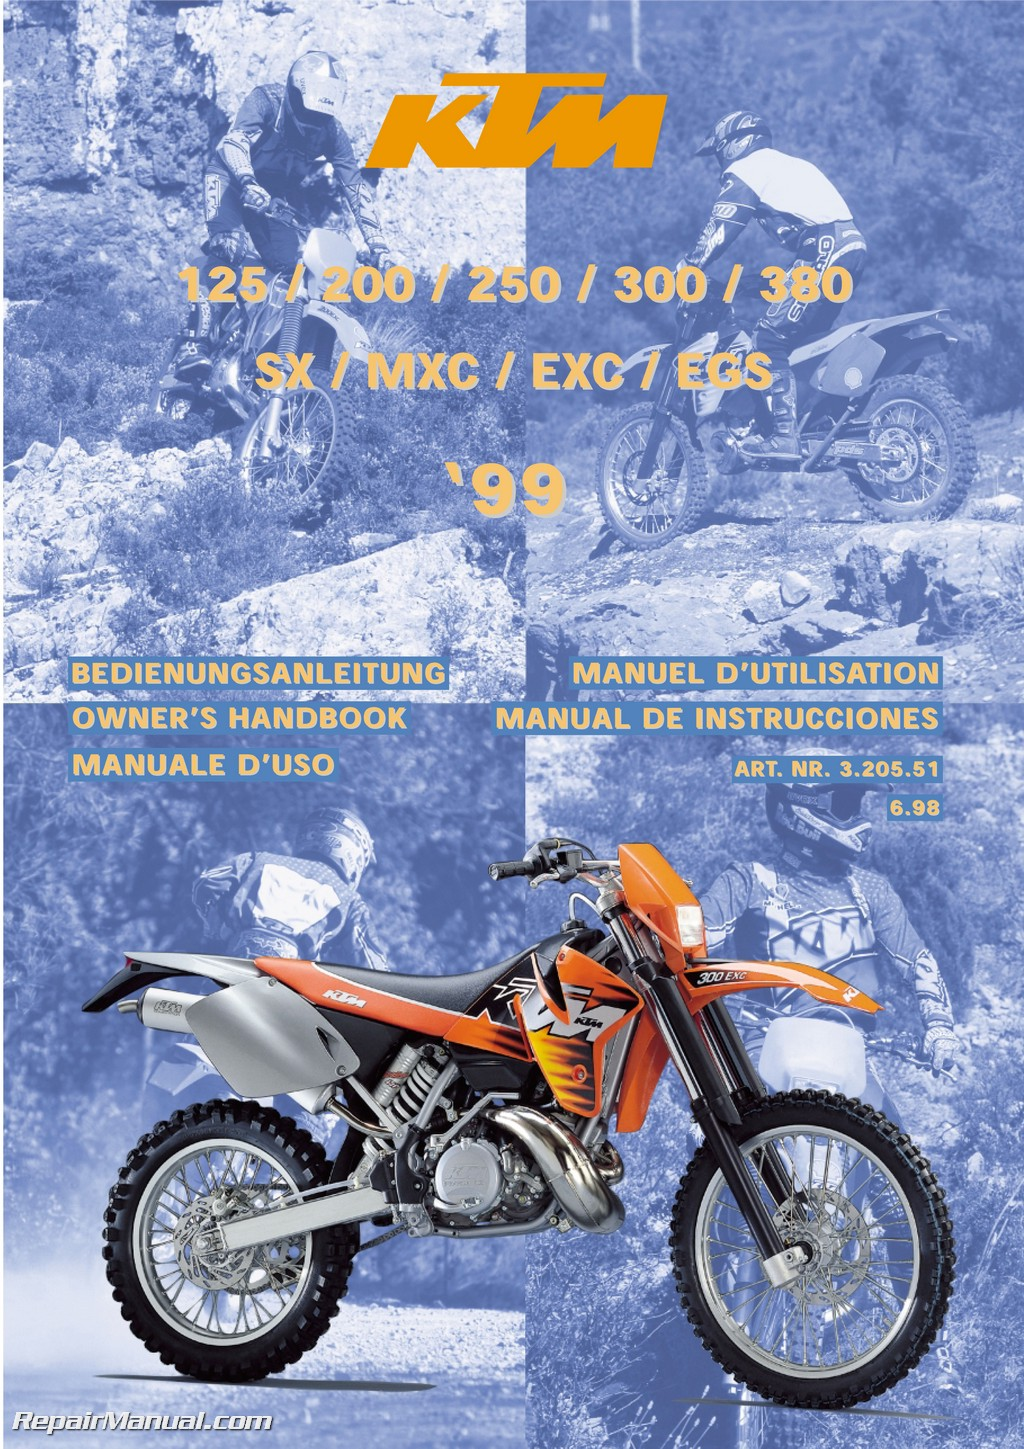 1999 ktm 125 200 250 300 380 sx mxc exc egs motorcycle owners manual rh  repairmanual com 1996 KTM EXC 300 Brake Fluid 1998 KTM 300 EXC